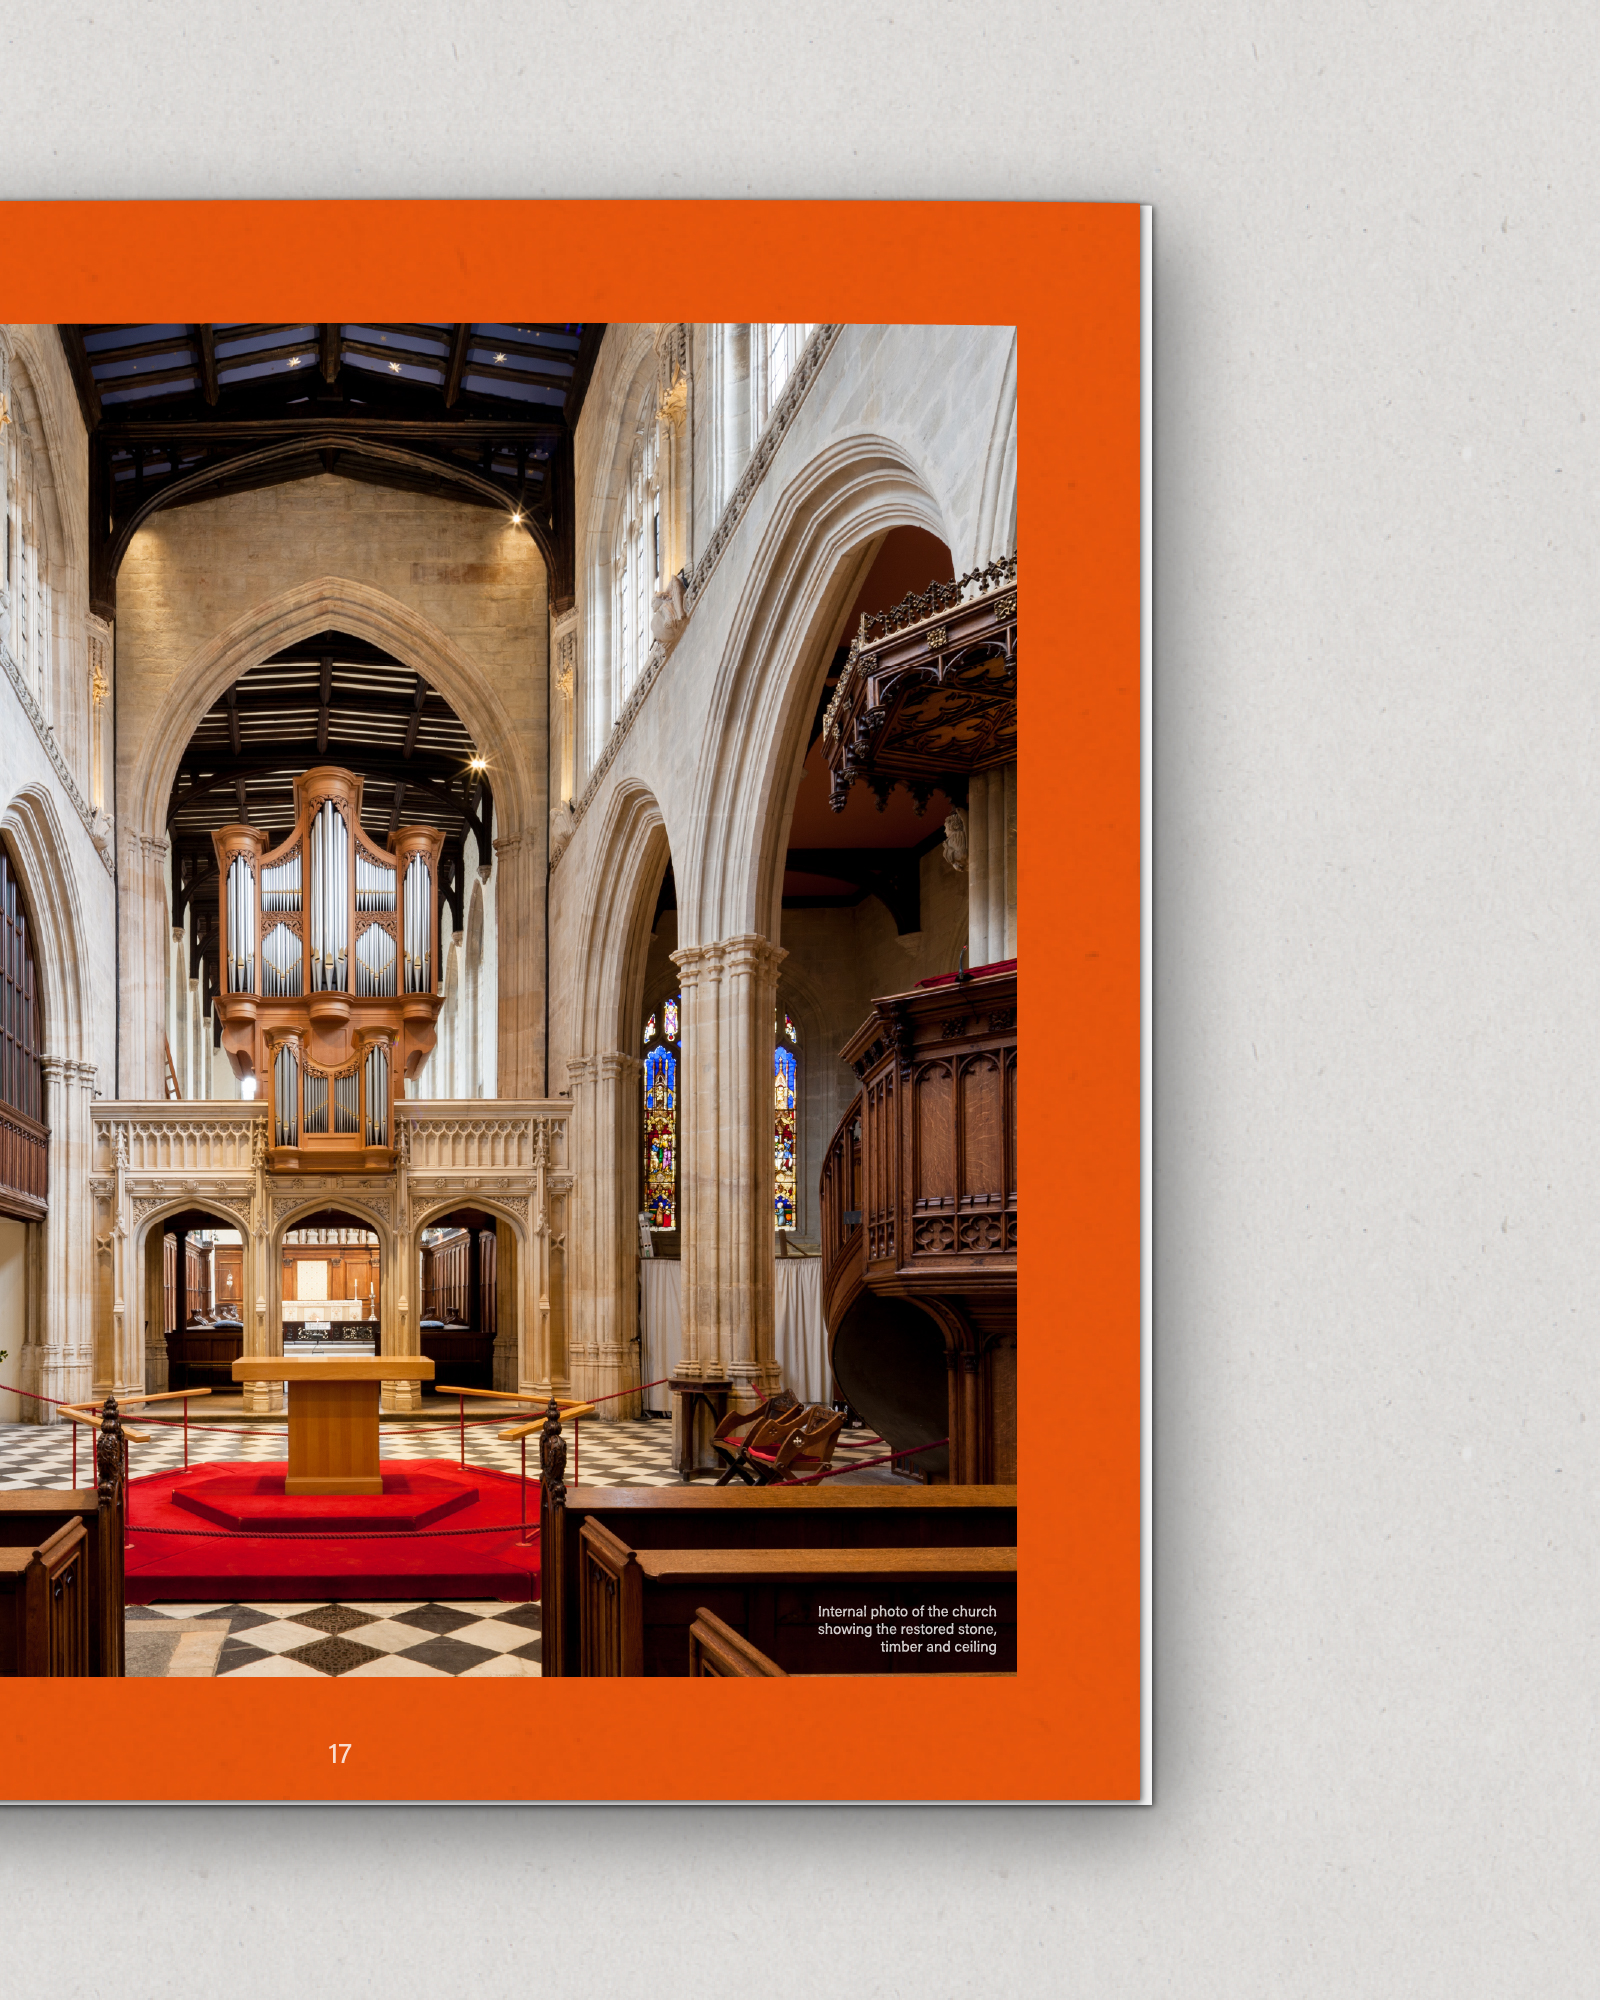 Example of brochure design showing interior of Oxford church